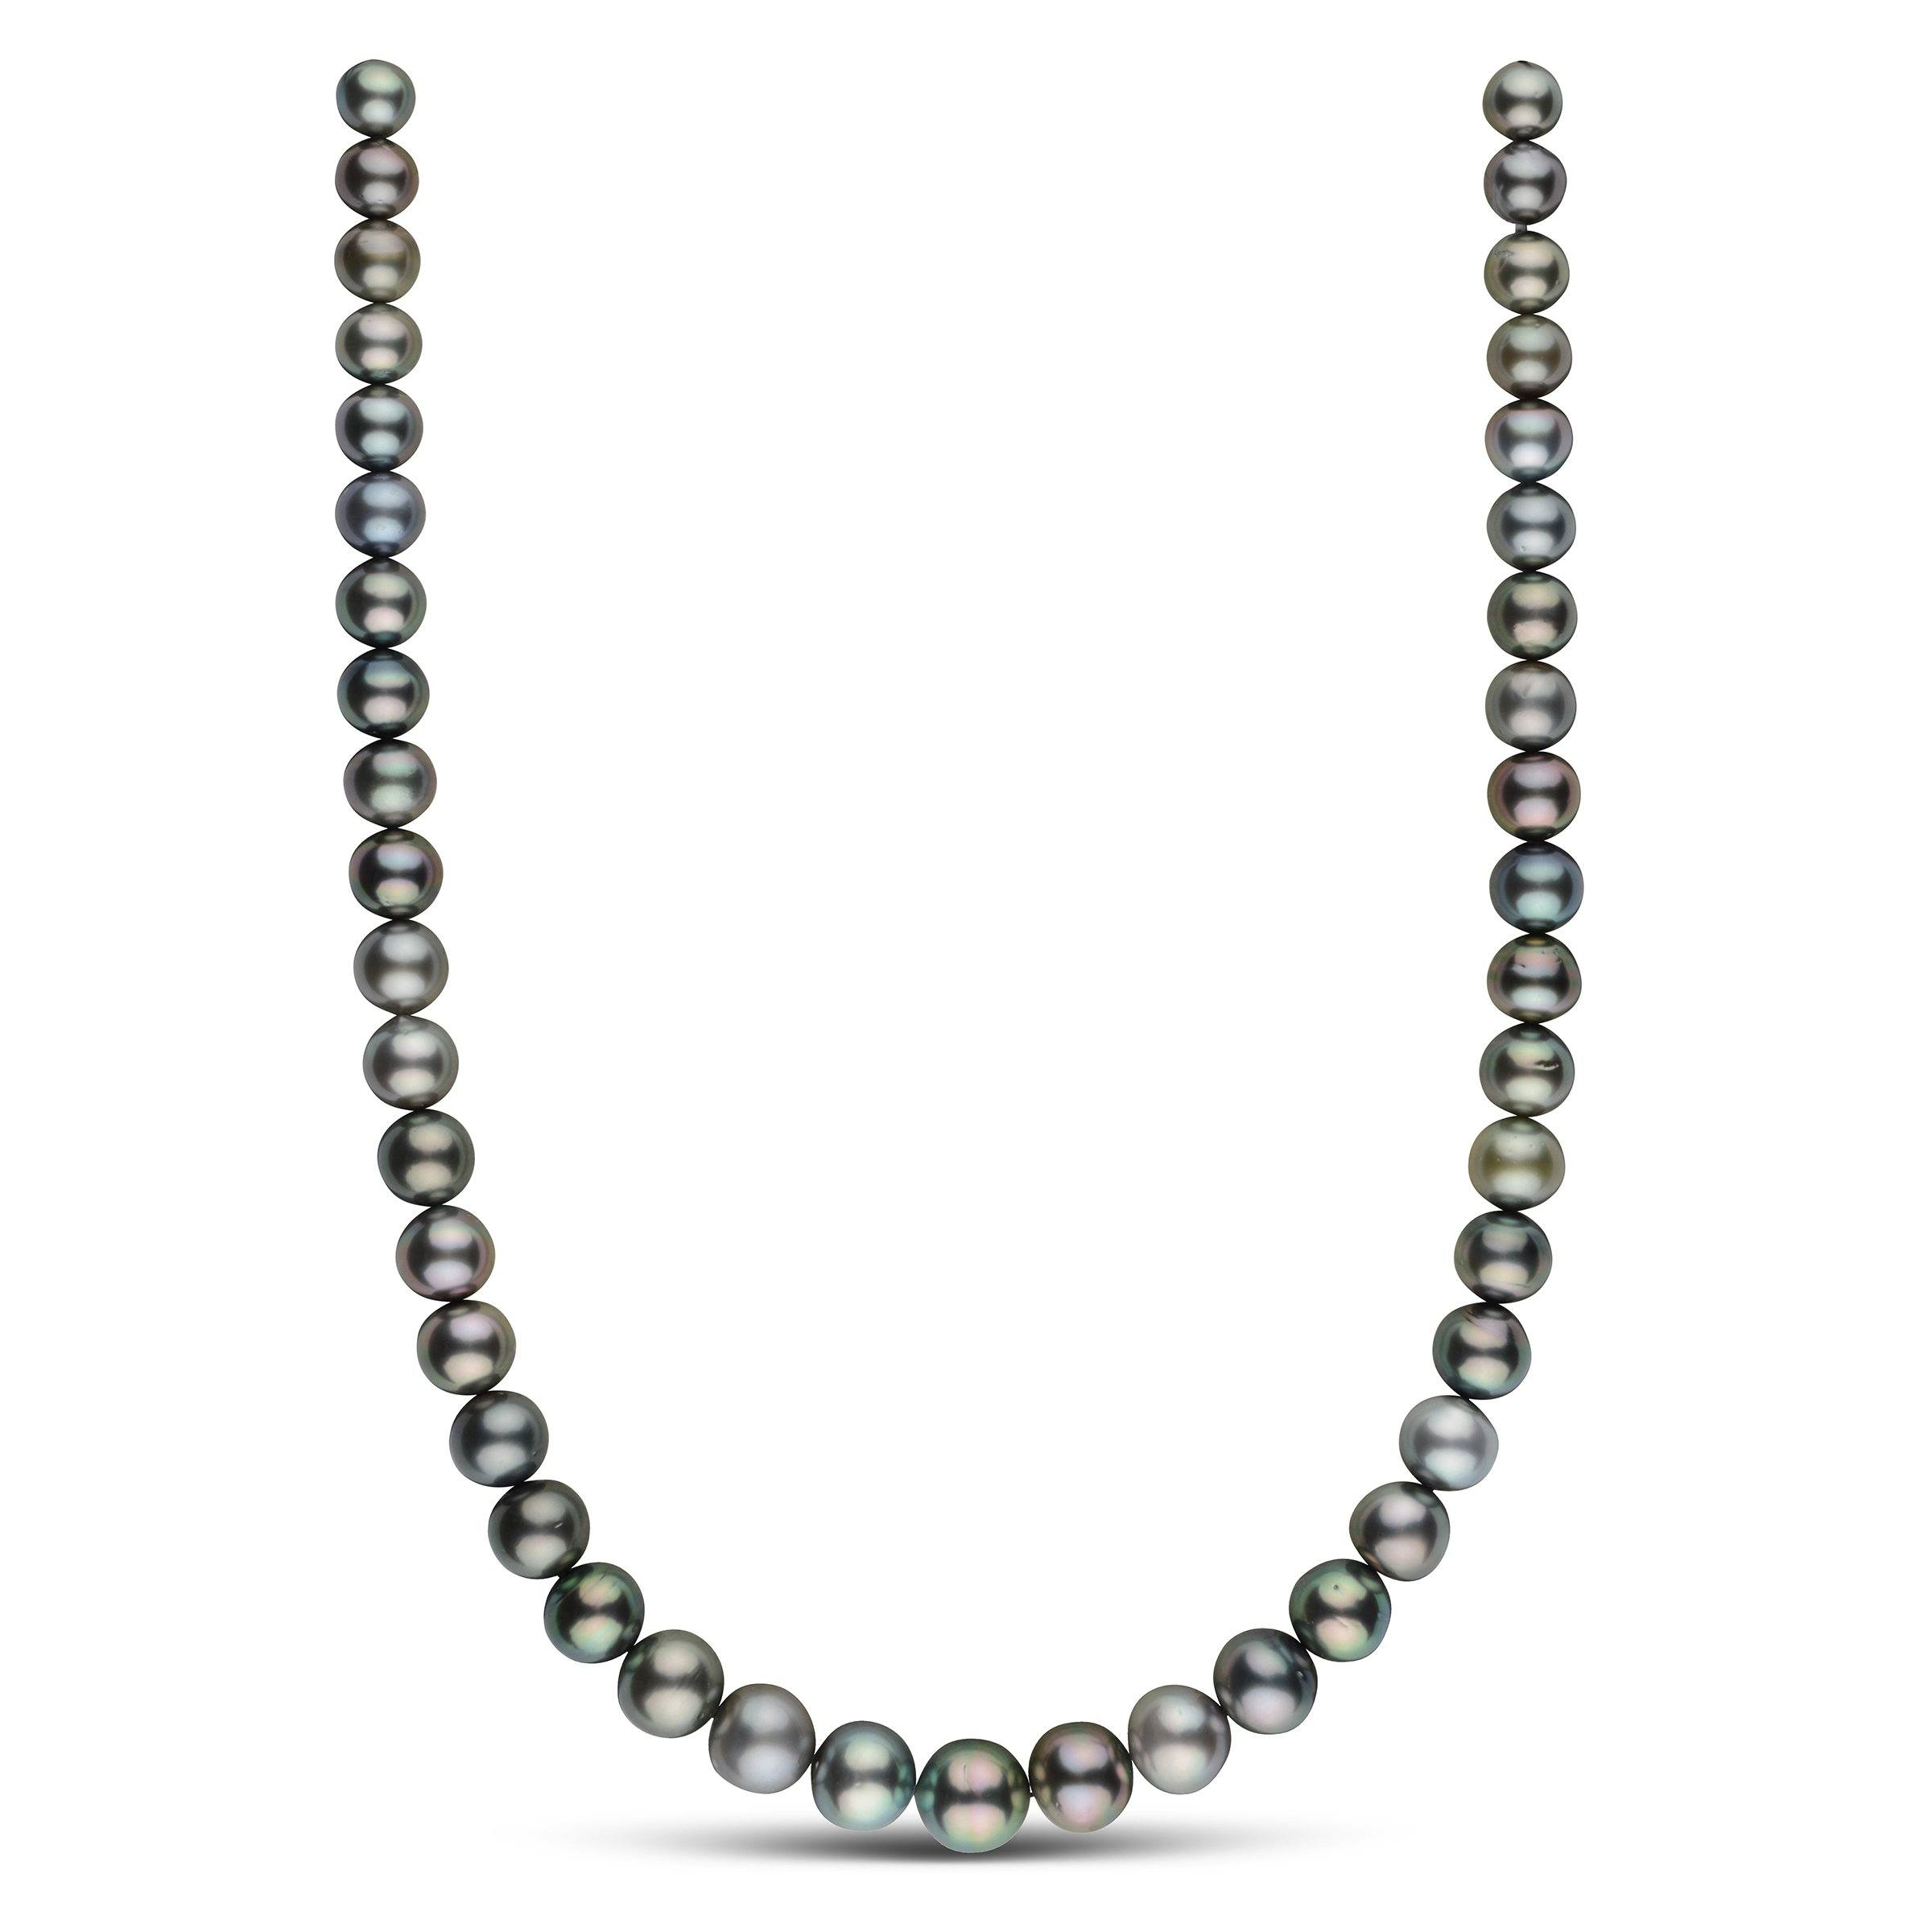 8.4-11.9 mm AA+/AAA Round Tahitian Pearl Necklace